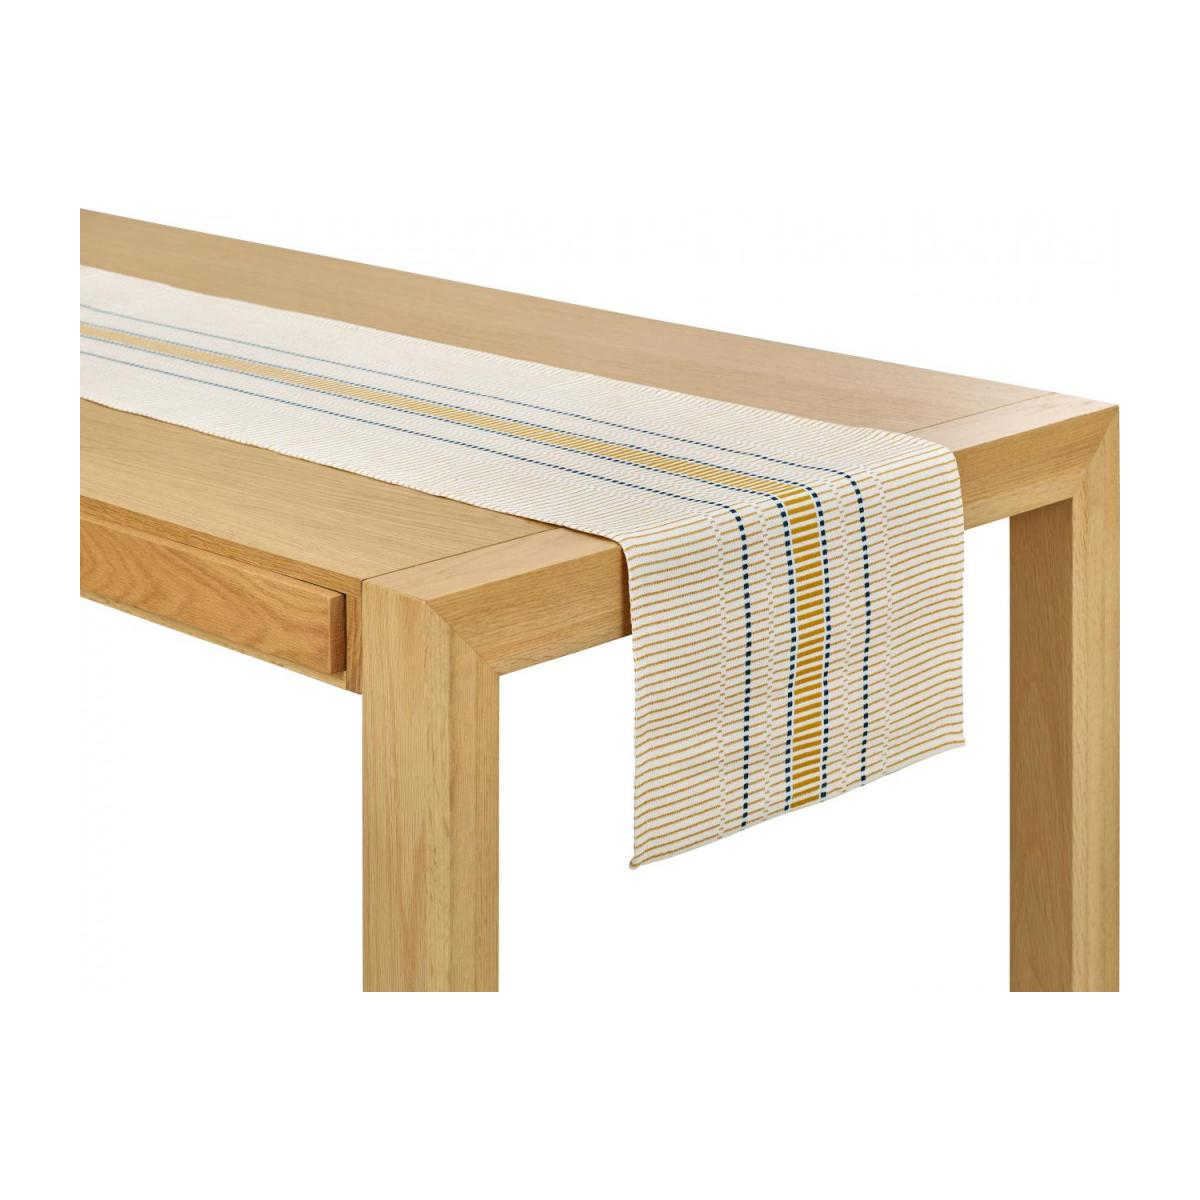 Mustard Patterned Table Runner n°1